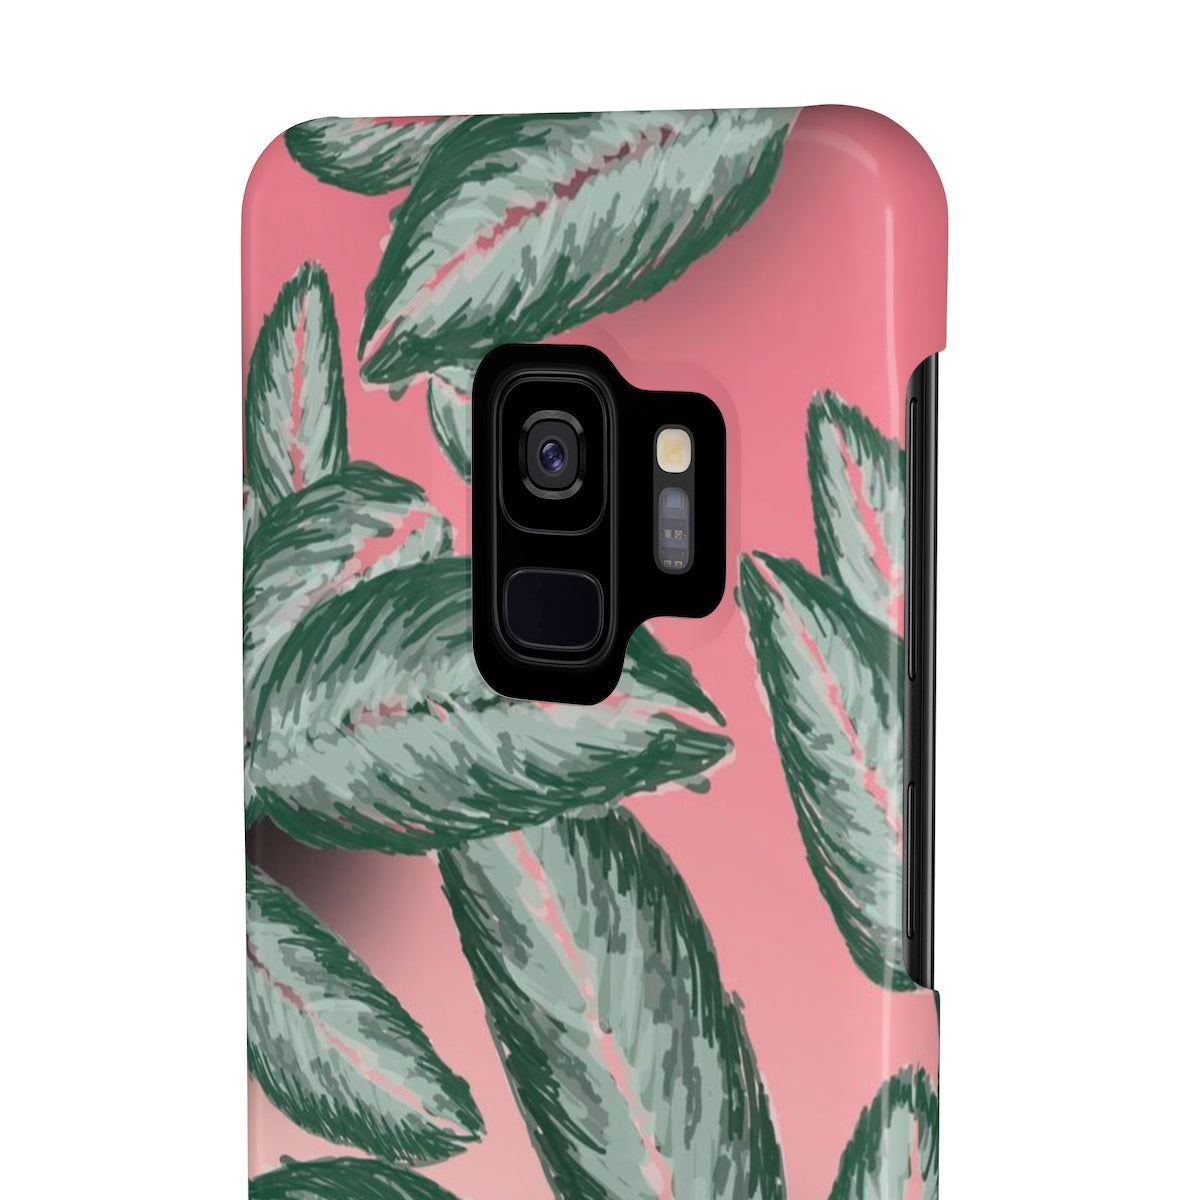 Palm Springs Sleek and Chic Phone Case